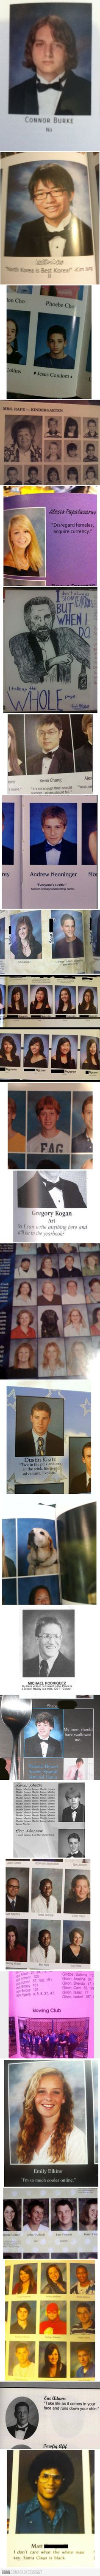 funny yearbooks